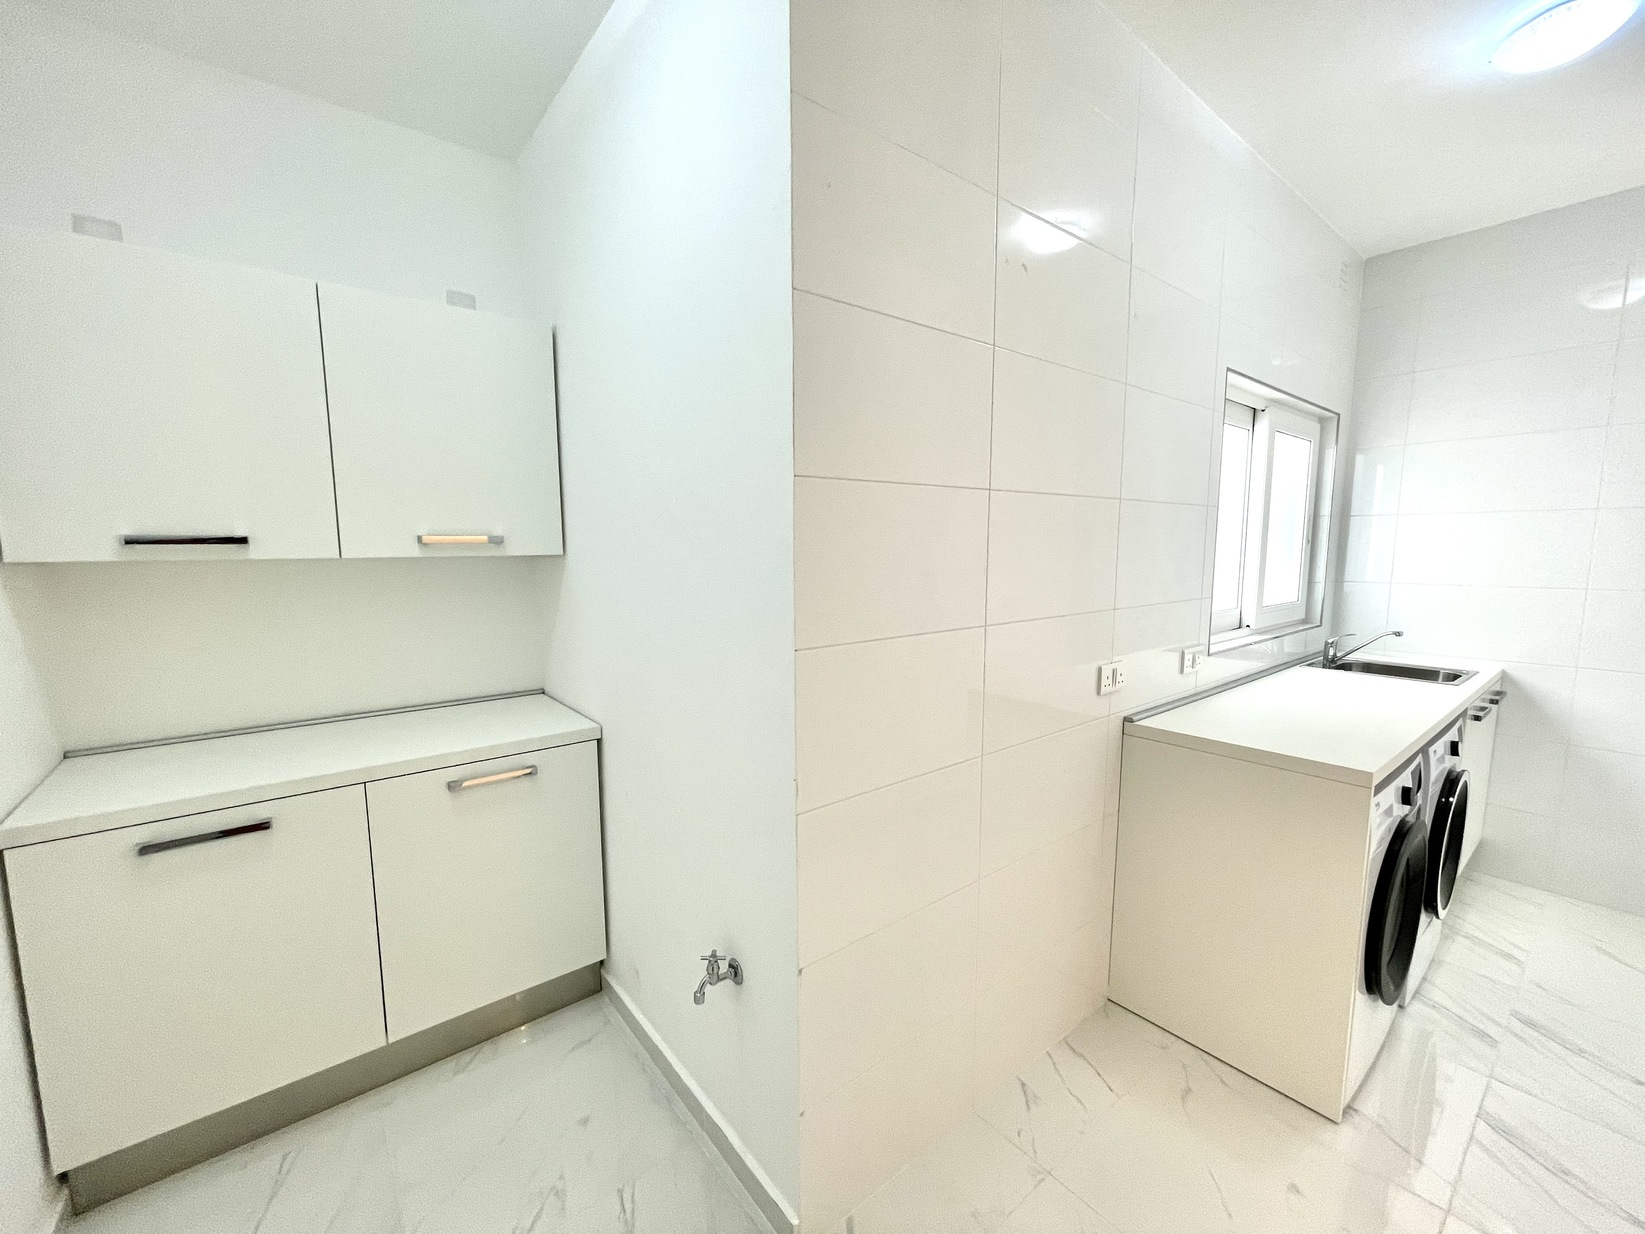 3 bed Apartment For Rent in Zejtun, Zejtun - thumb 18